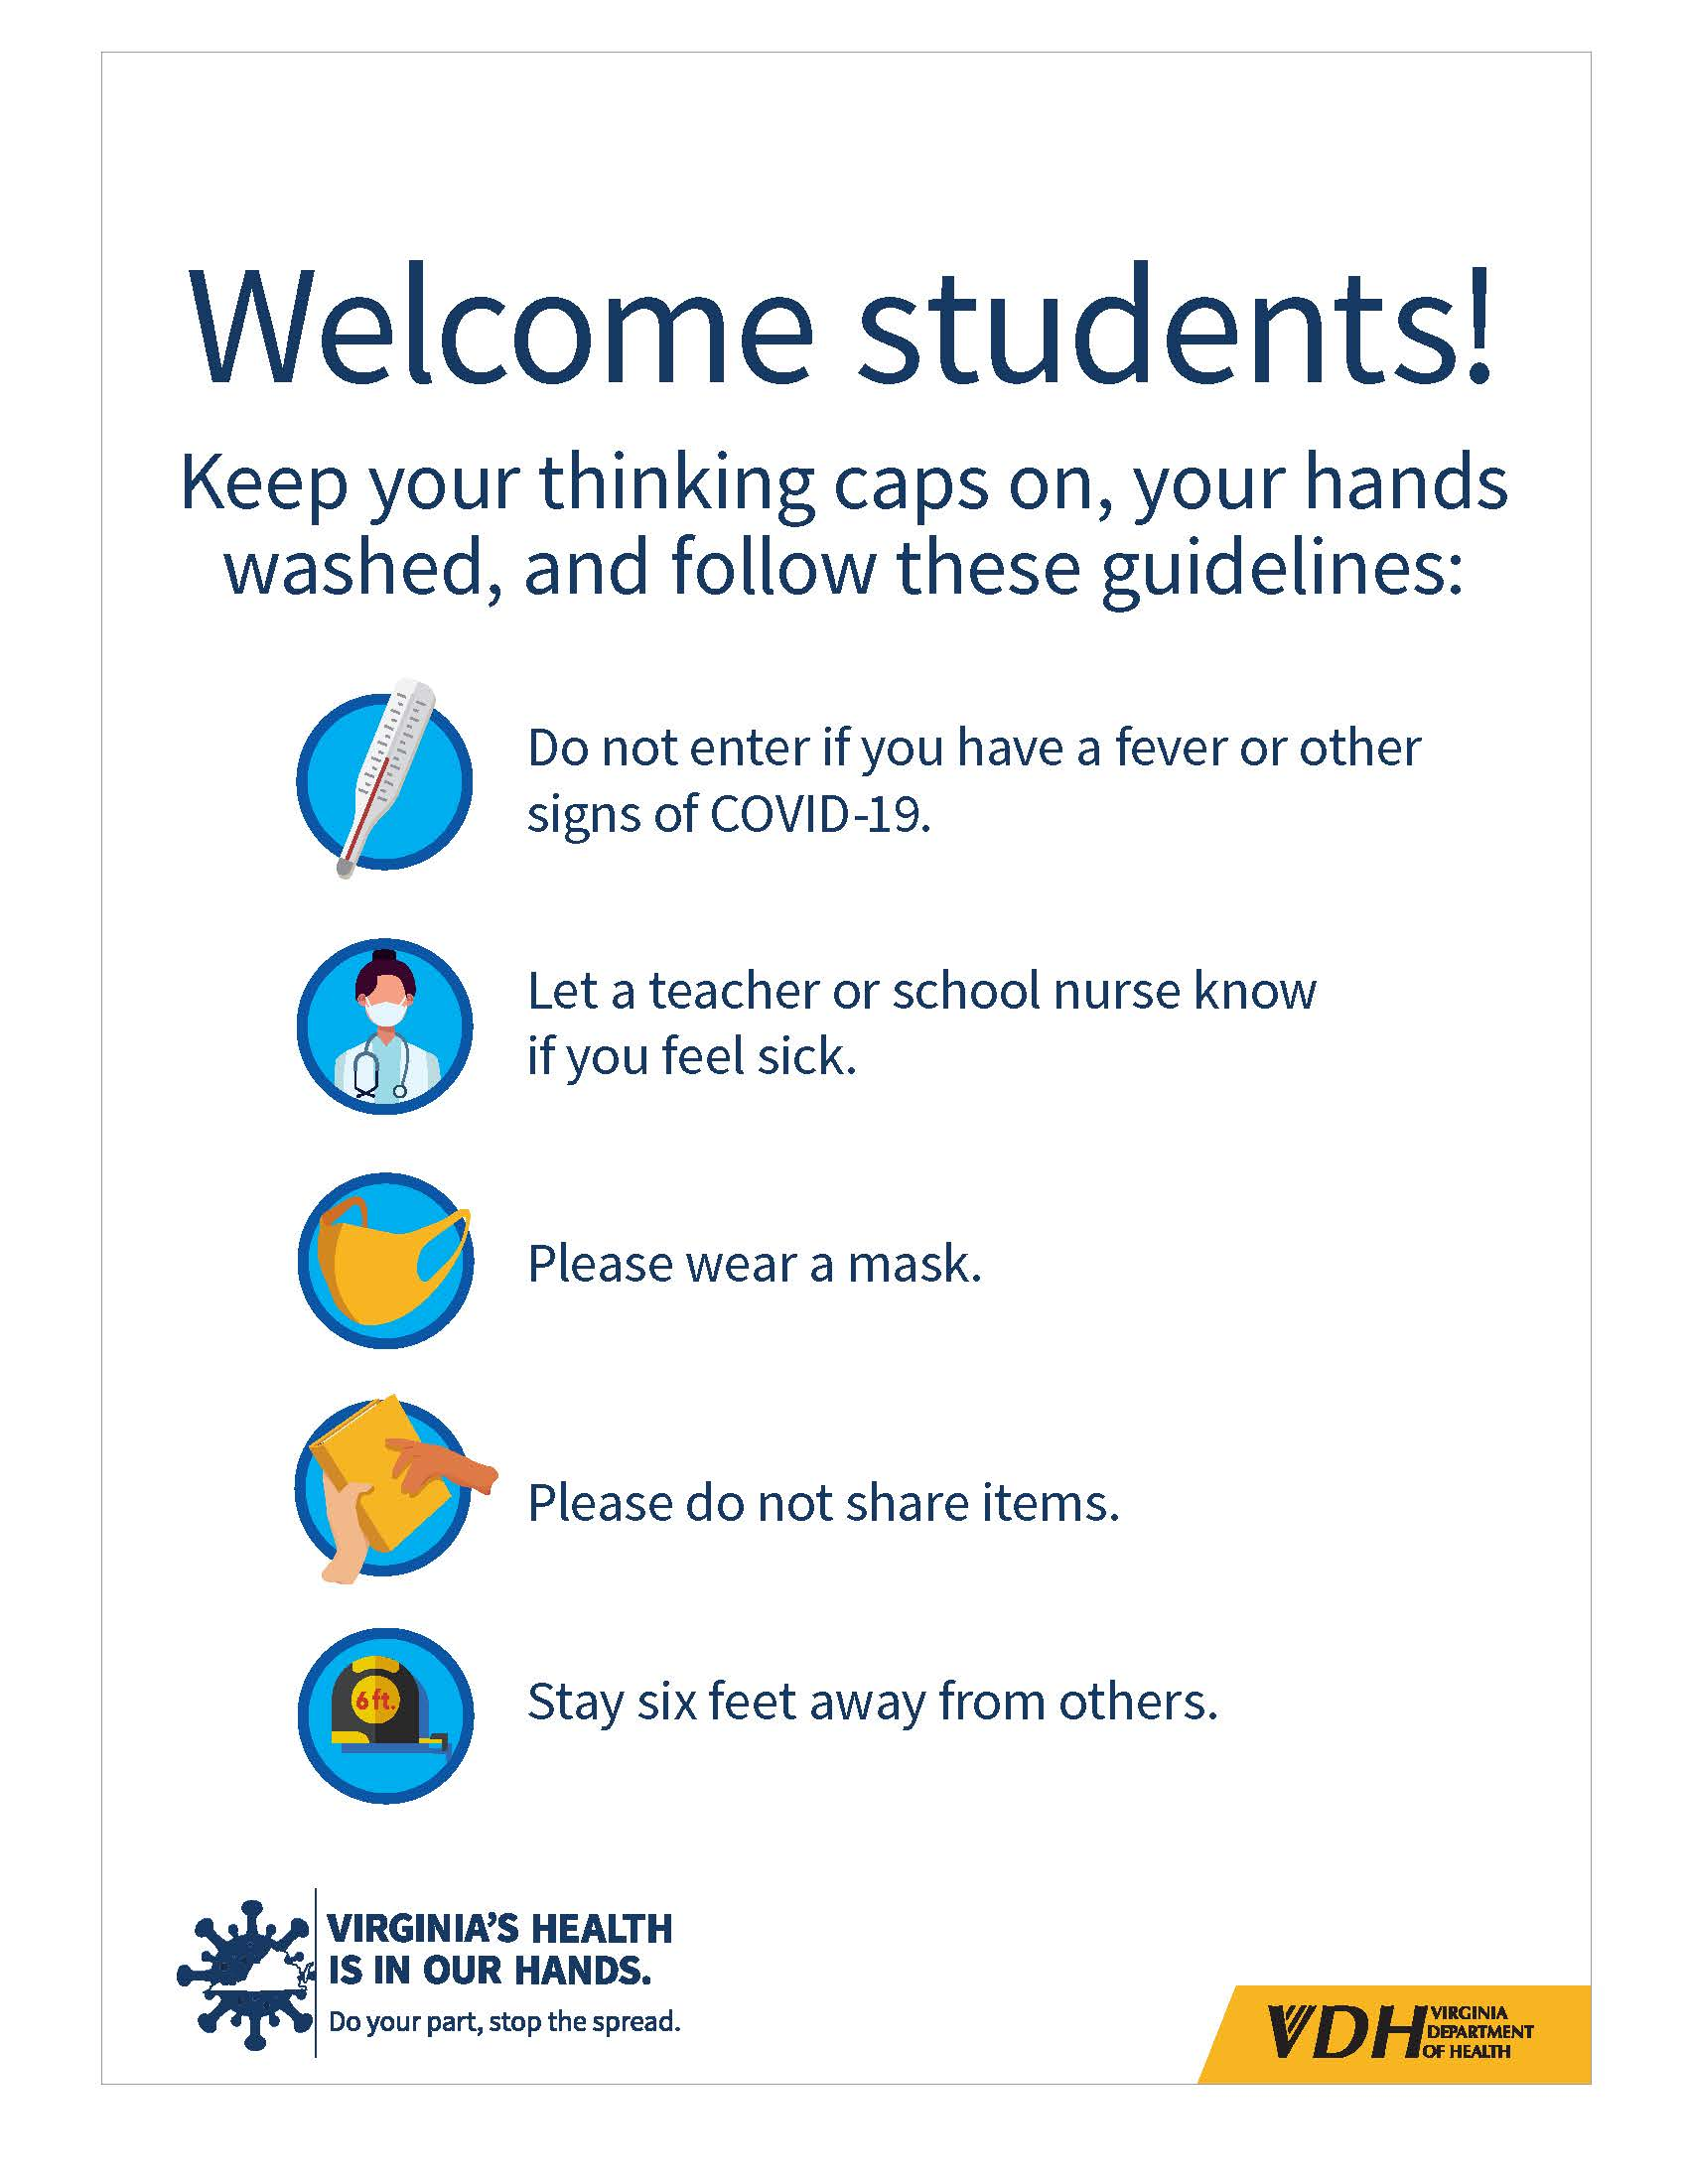 Welcome students with white background